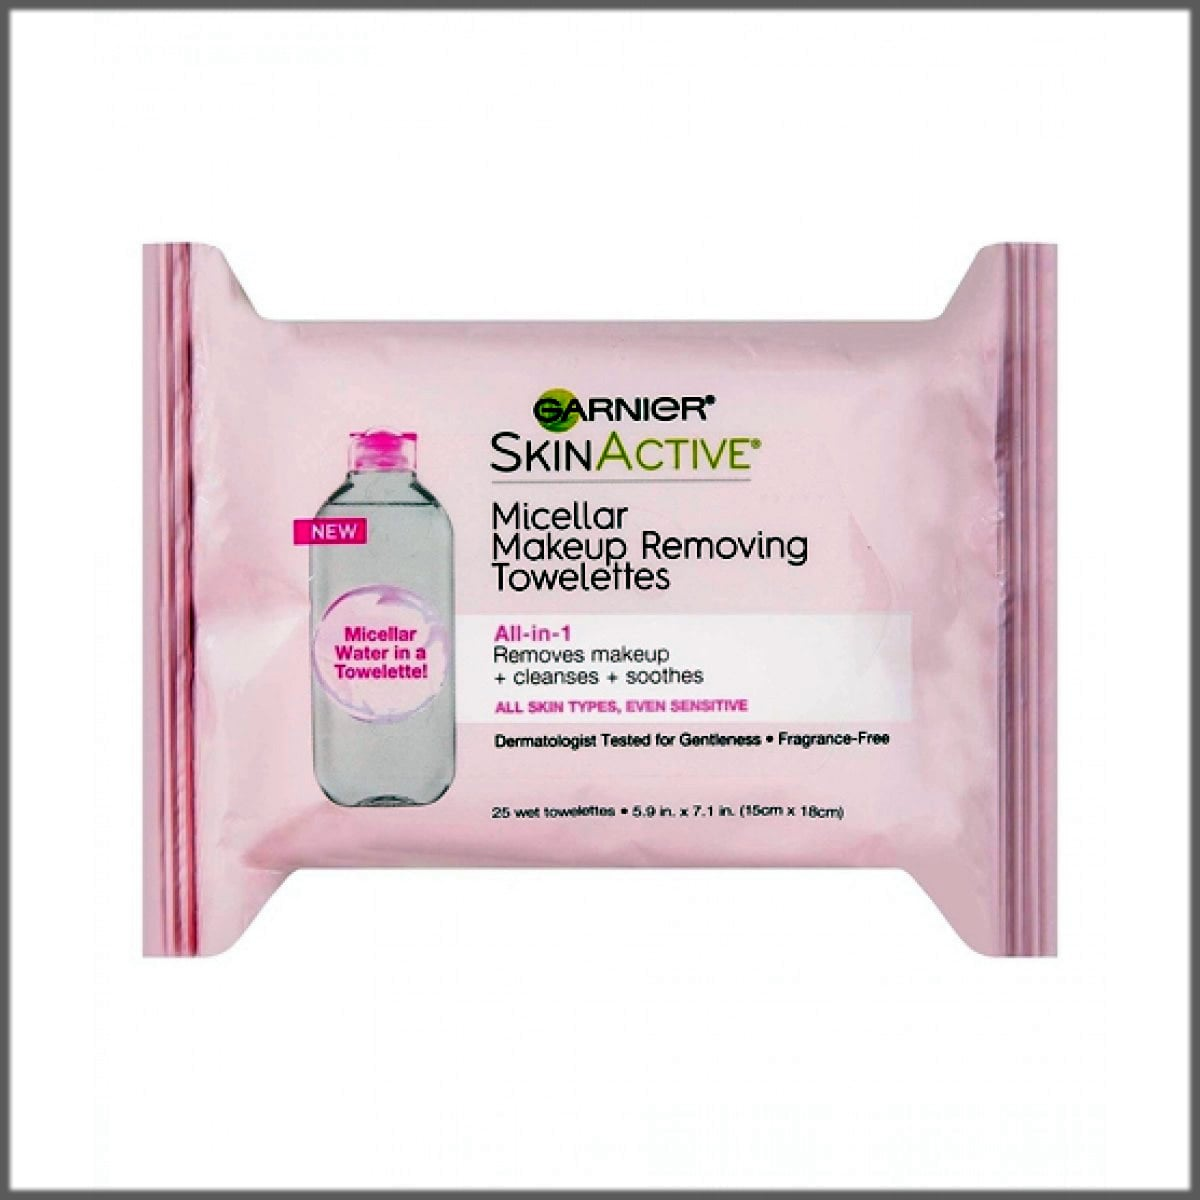 Makeup remover wipes reduce eye bags